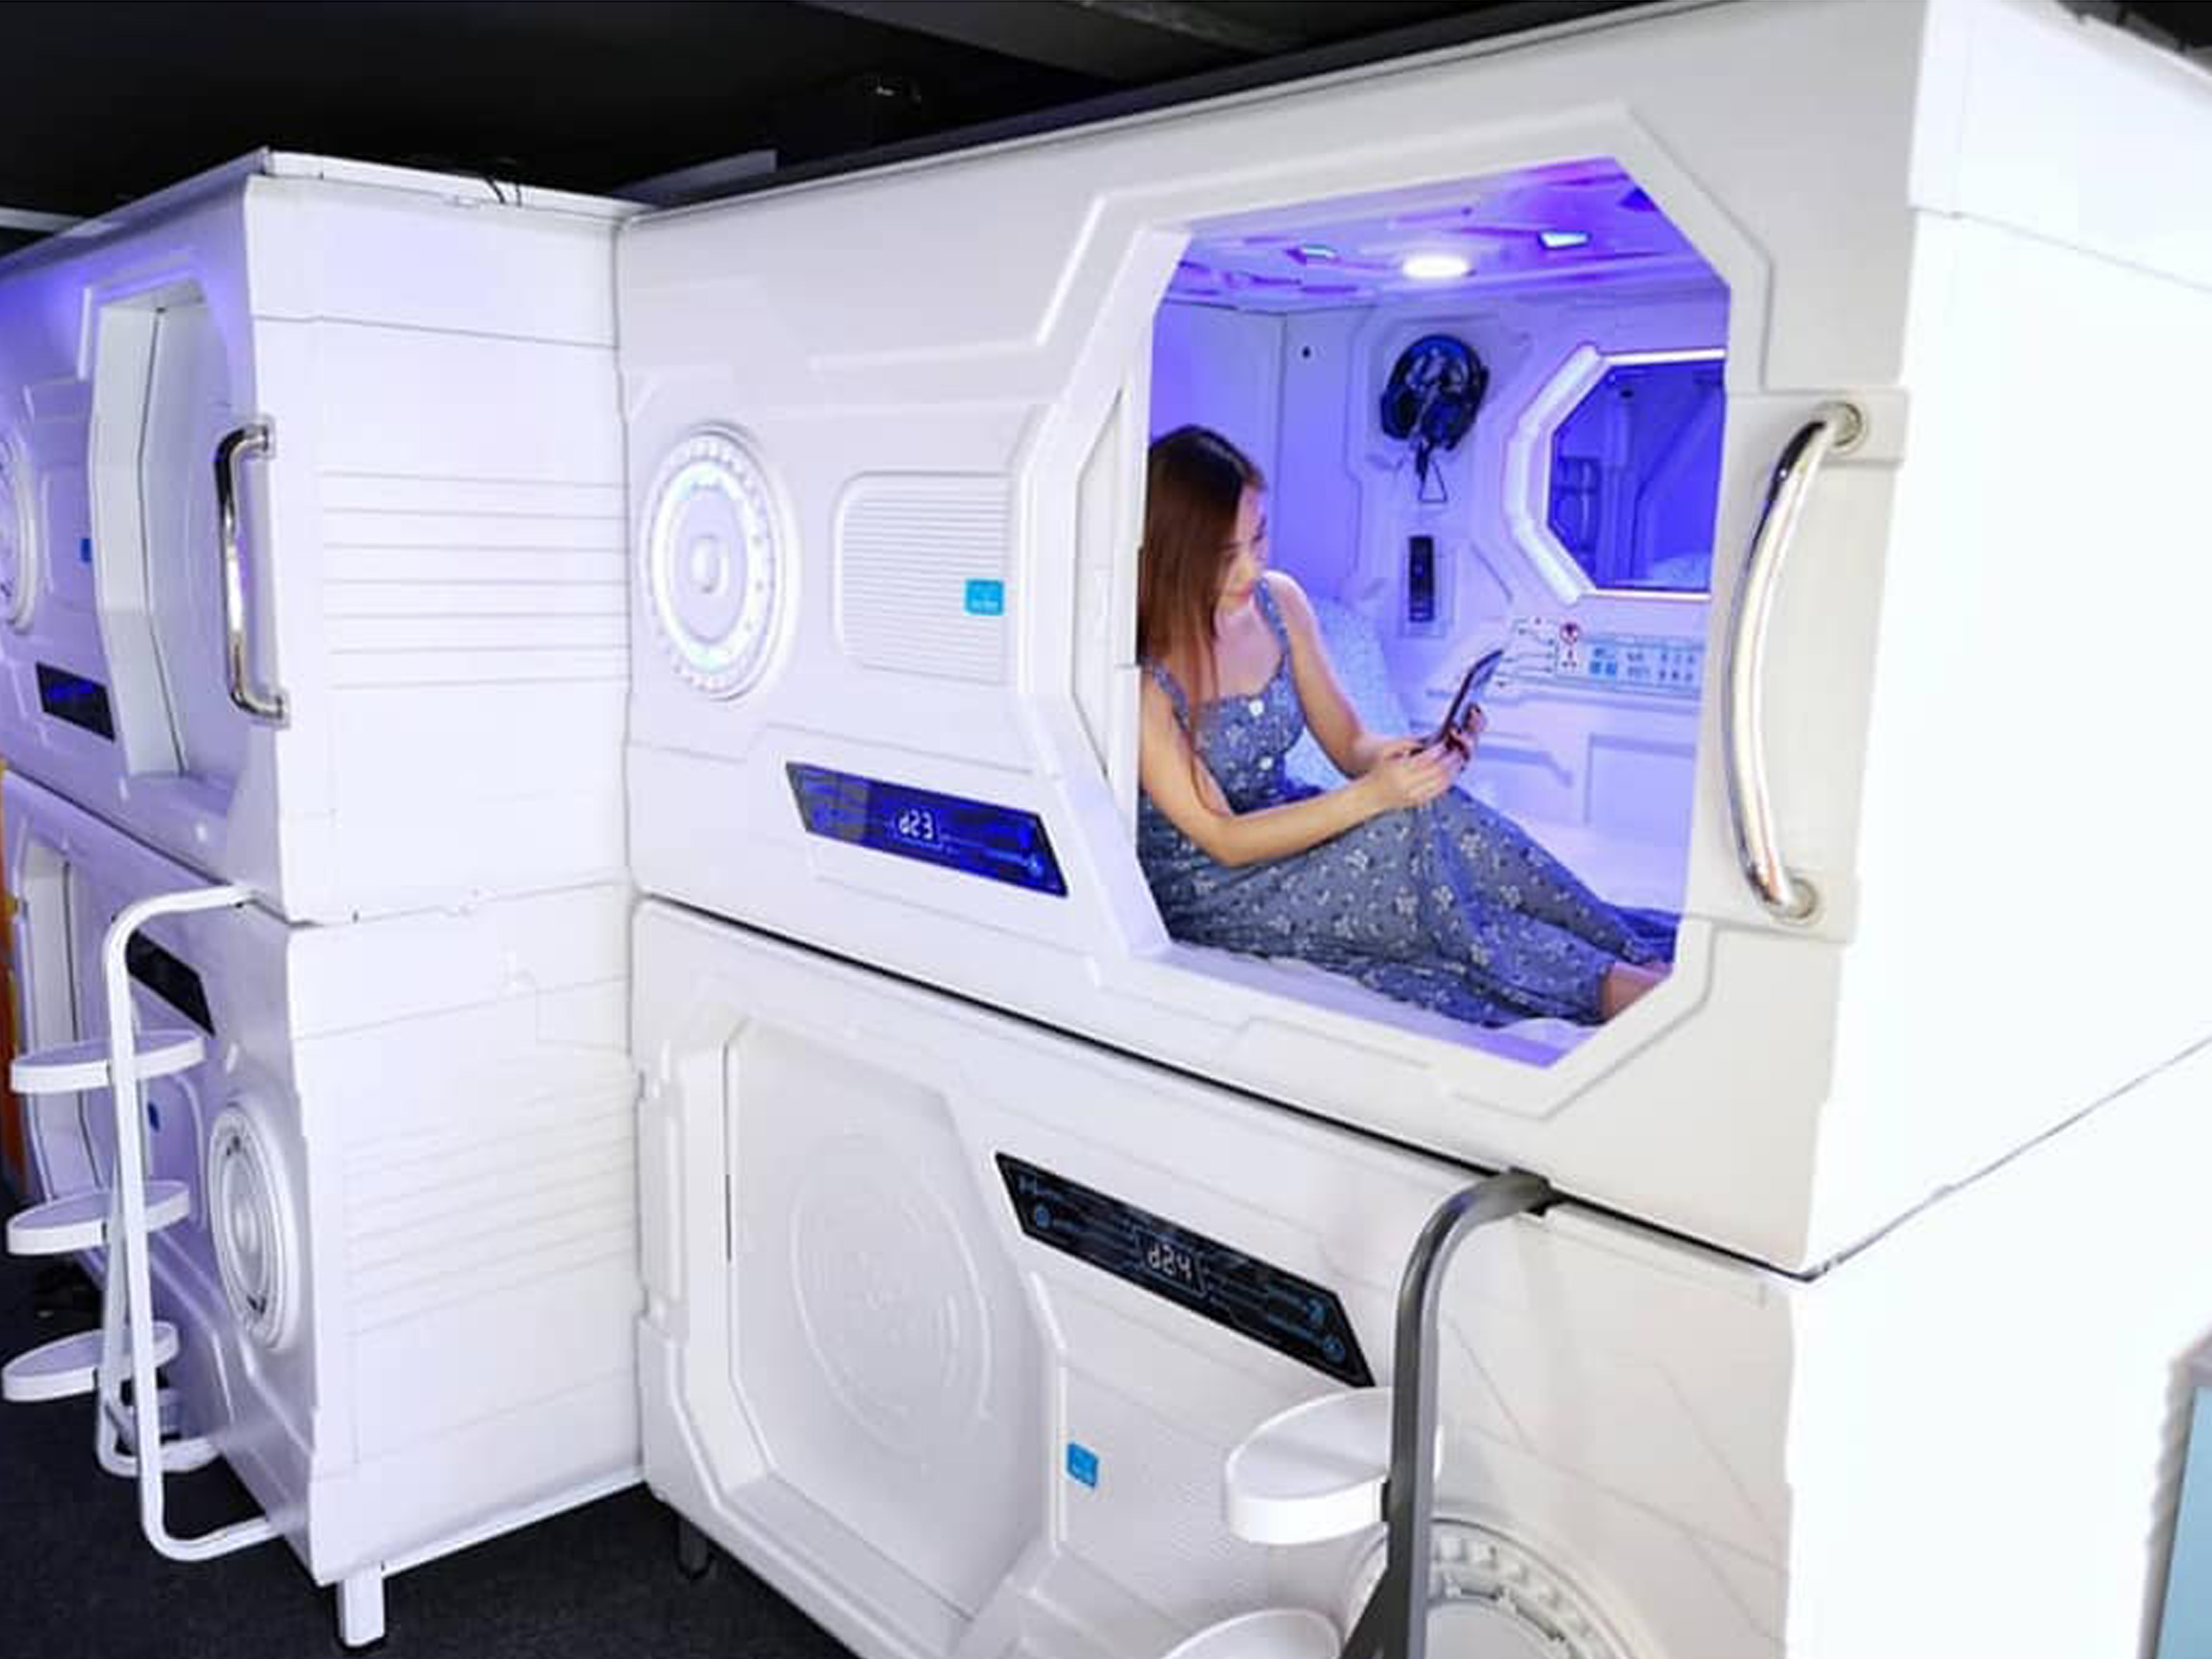 Space-themed Capsule Hotel Galaxy Pods